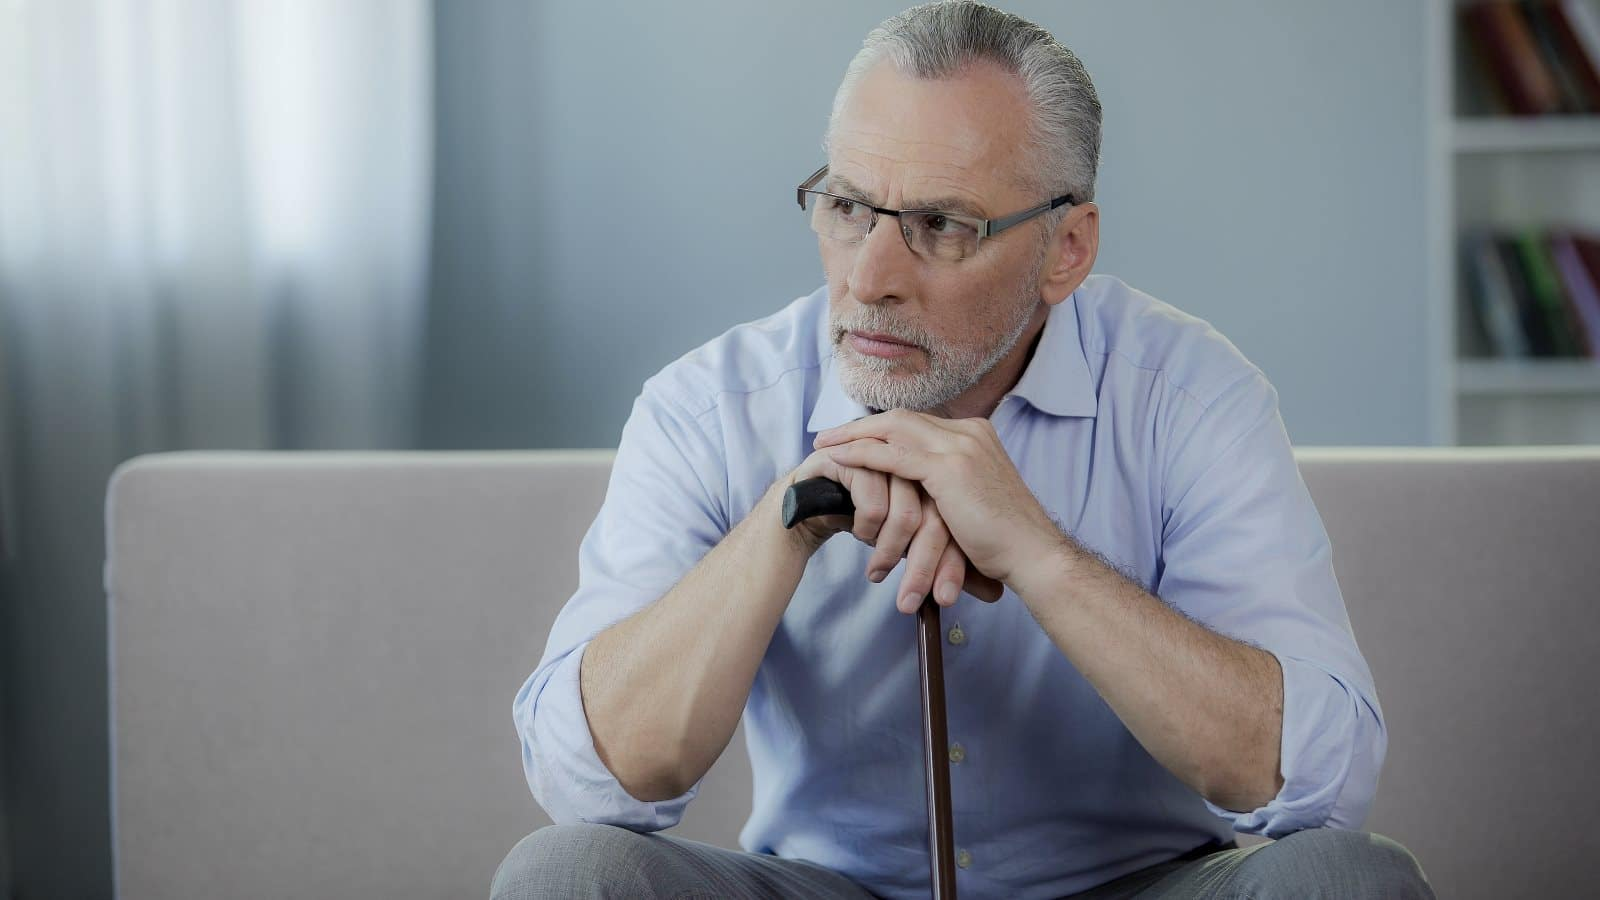 Mature business owner concerned net worth and company value